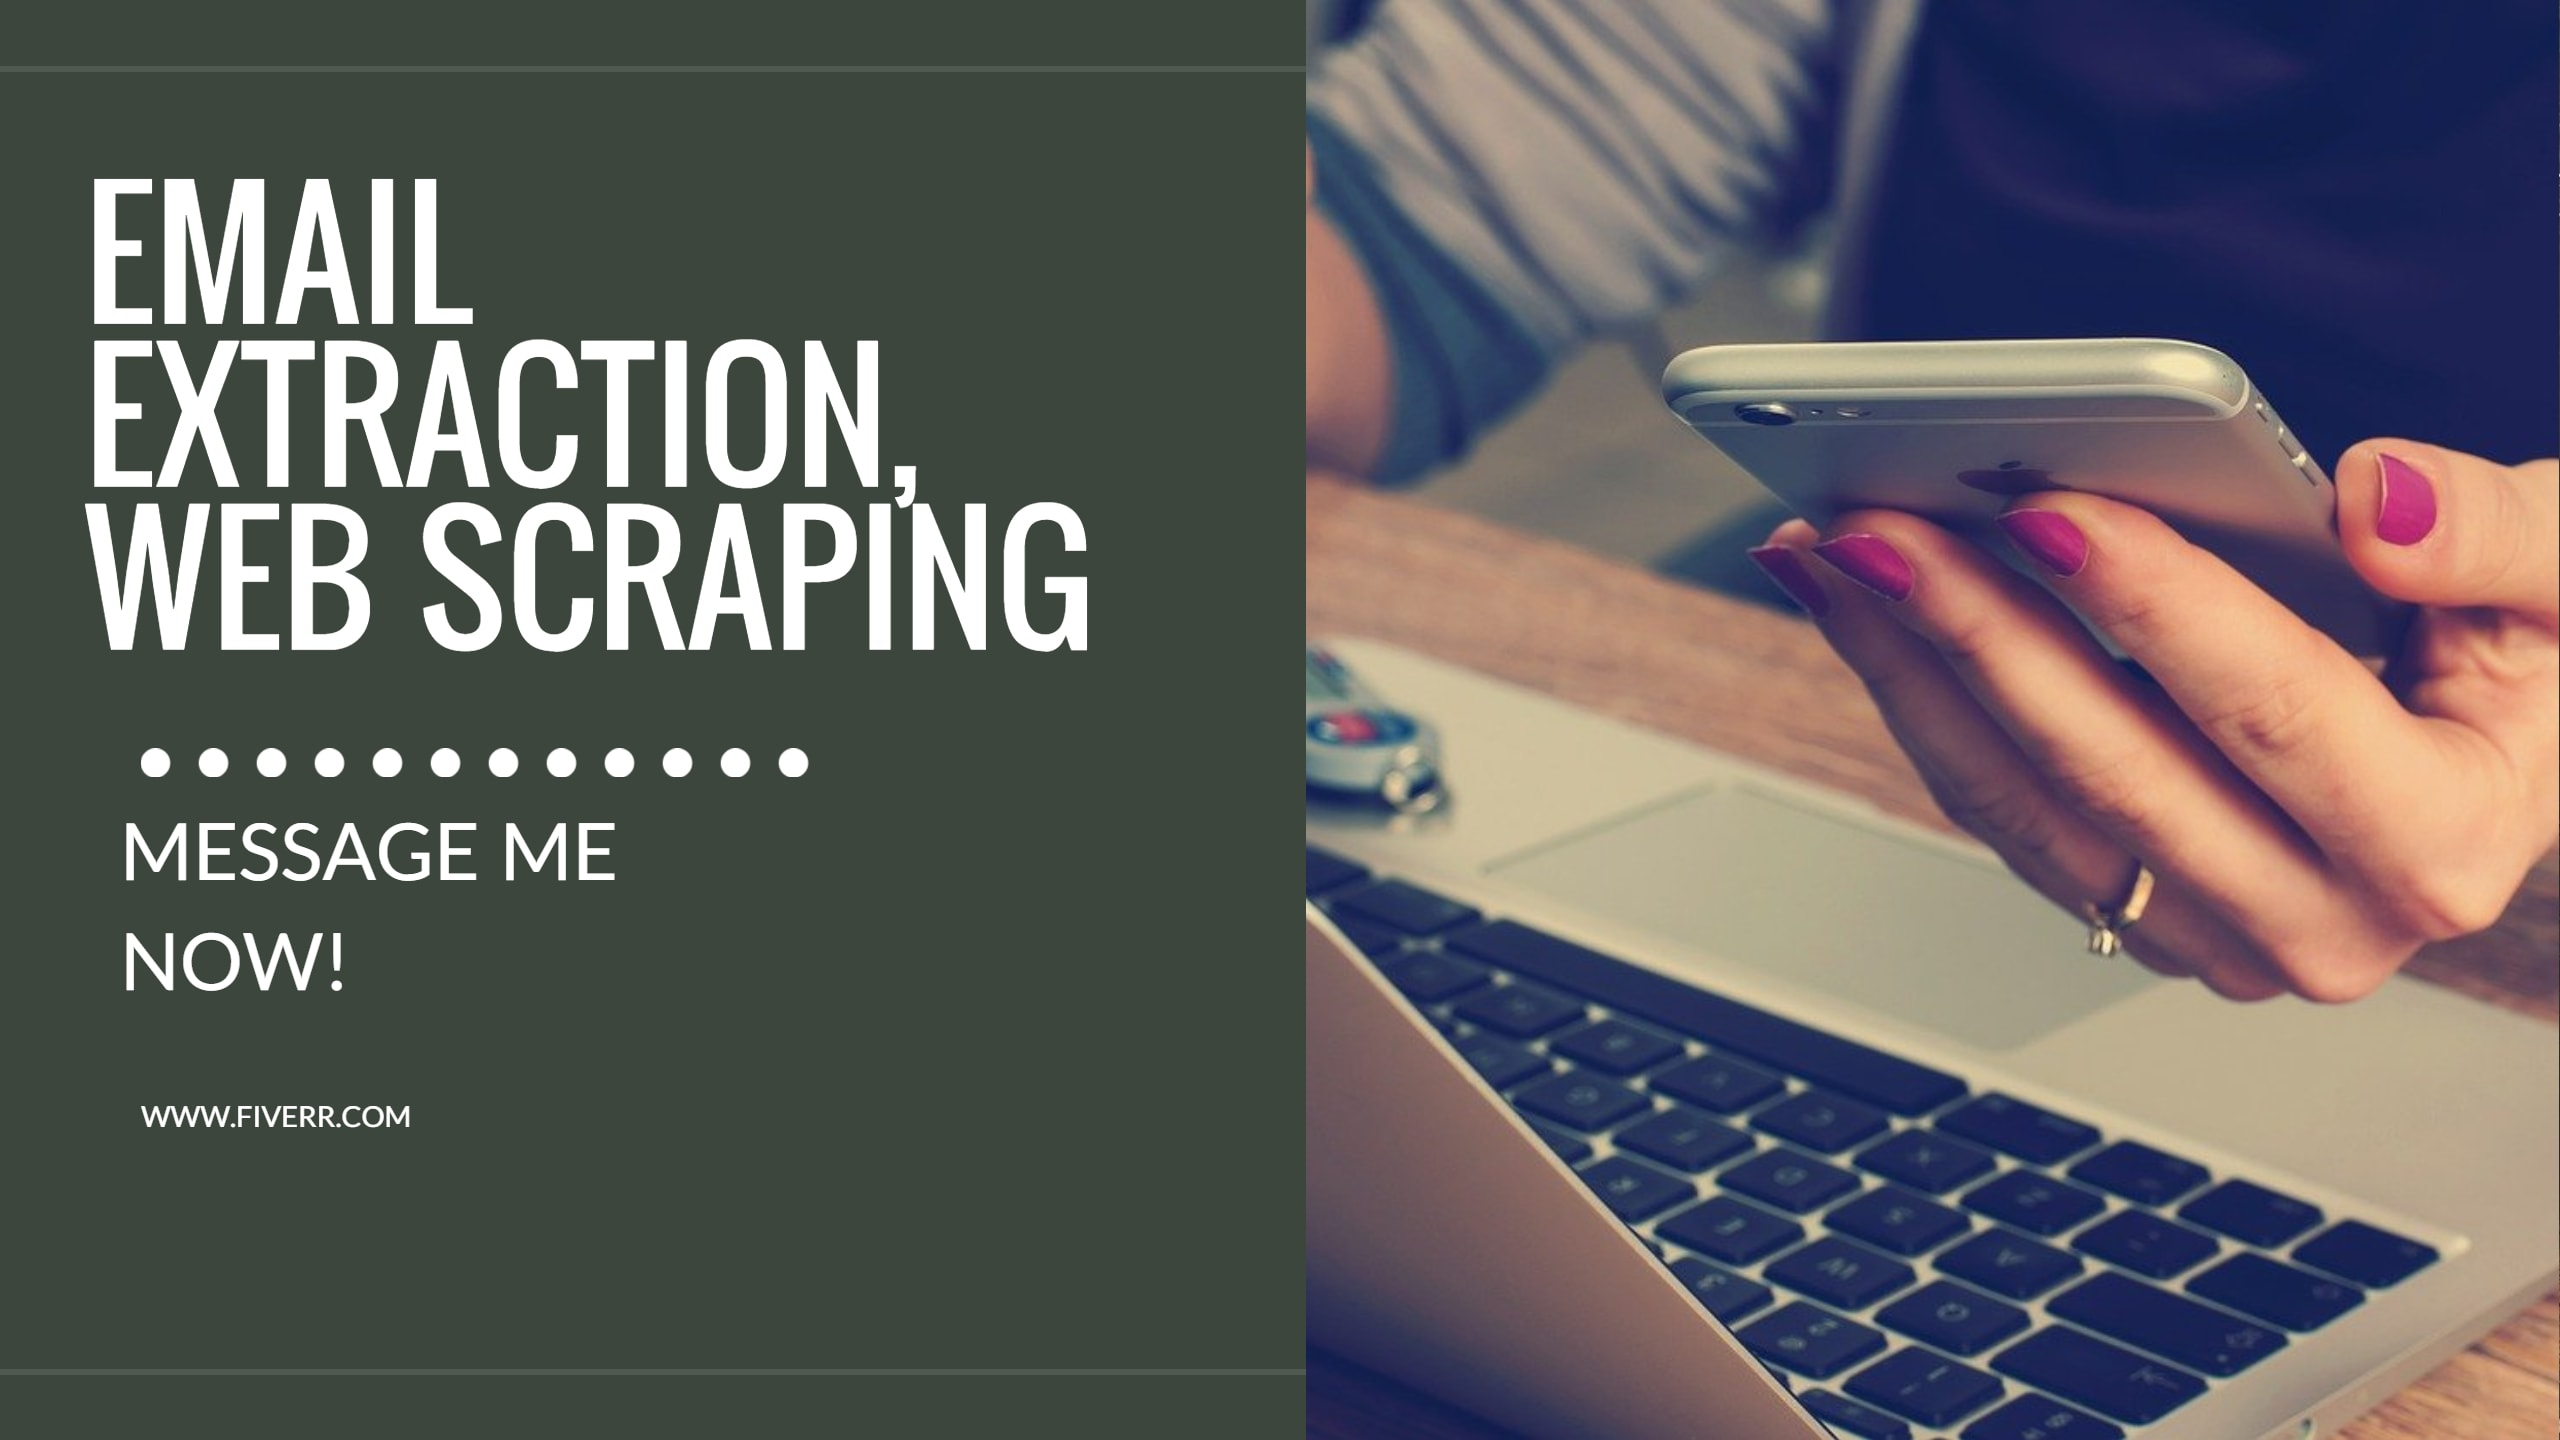 Do Email Extraction Web Scraping And Data Mining By Kajalkundu116